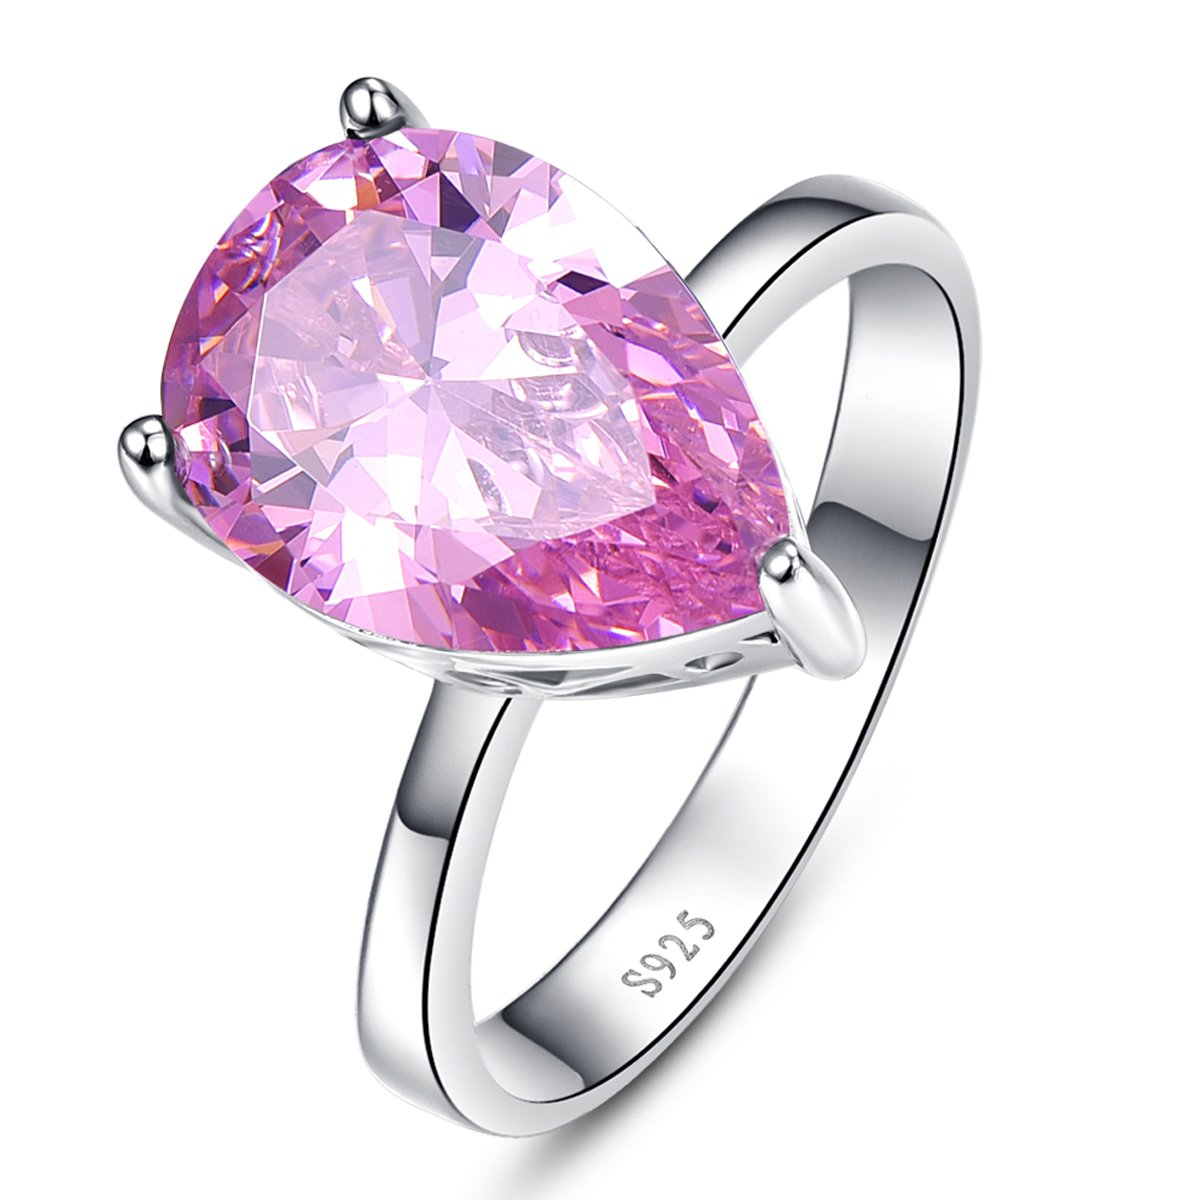 BONLAVIE Women\'s 8.55ct Pear Cut Created Pink Topaz Engagement ...